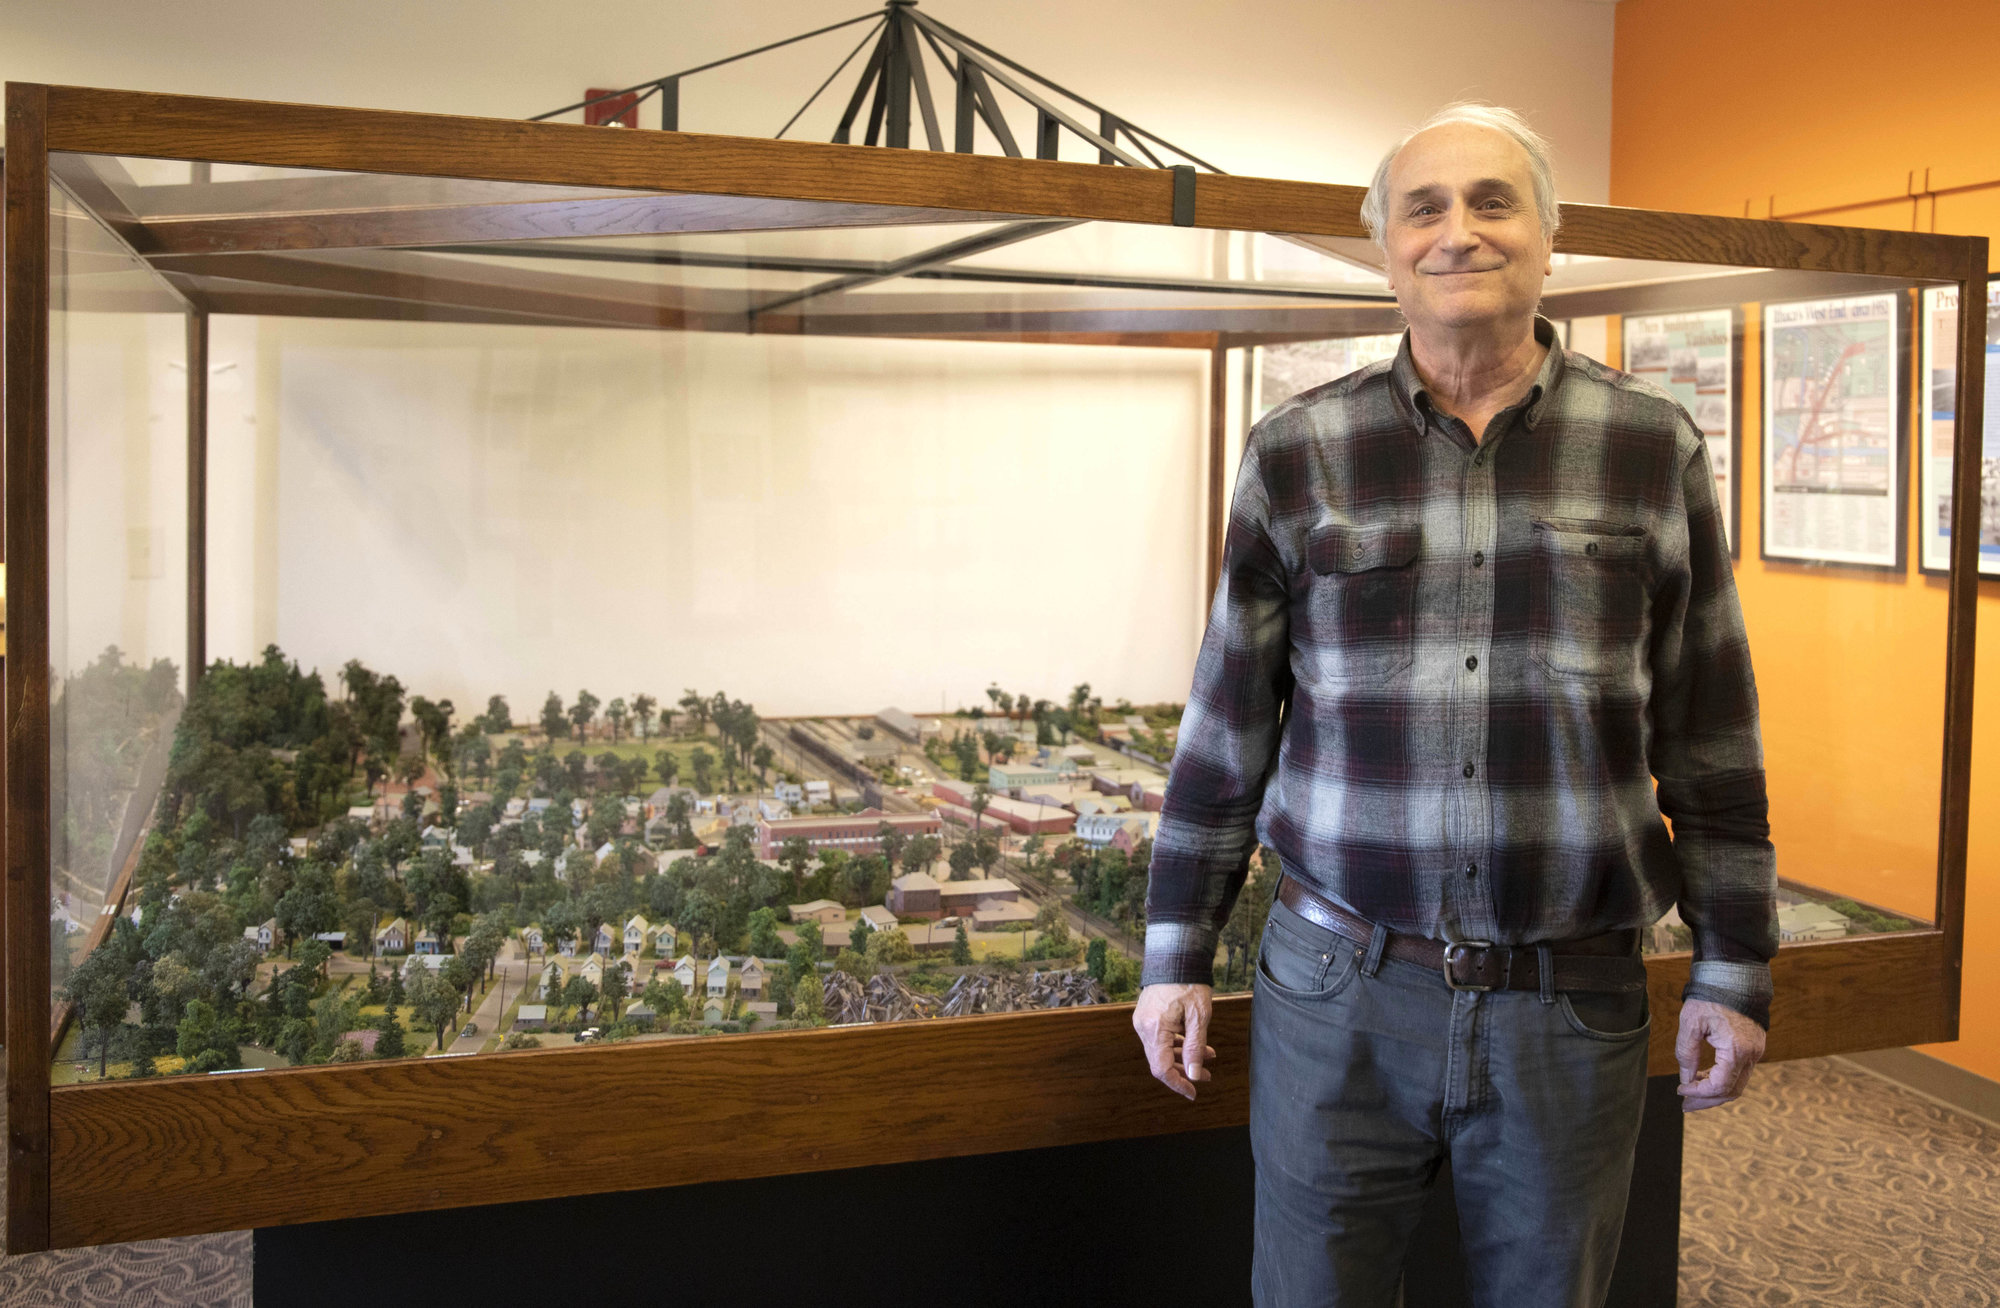 David Fogel stands in front of his scale model of Ithaca's West End circa 1960, currently located on the second floor of Alternatives Federal Credit Union. Due to renovations to Alternatives, Fogel is hoping to find a new place to display his project.